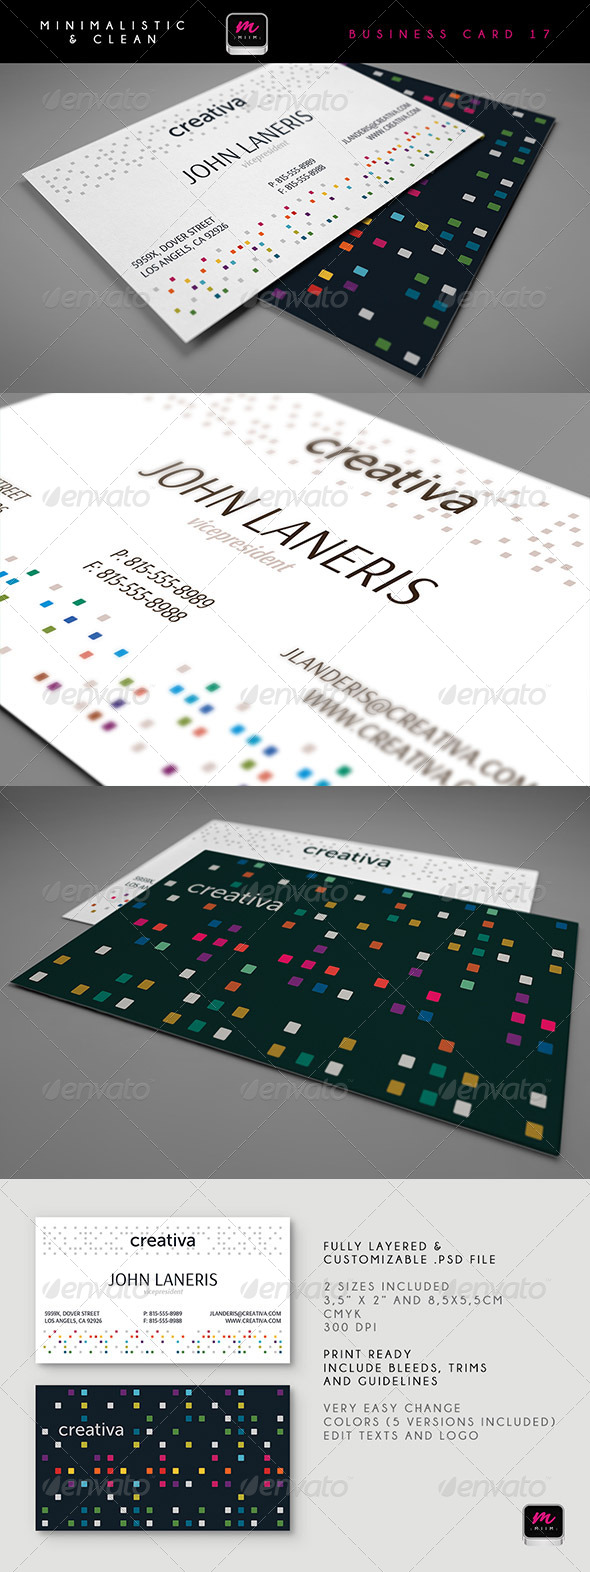 Clean Business Card Template 17 - Corporate Business Cards